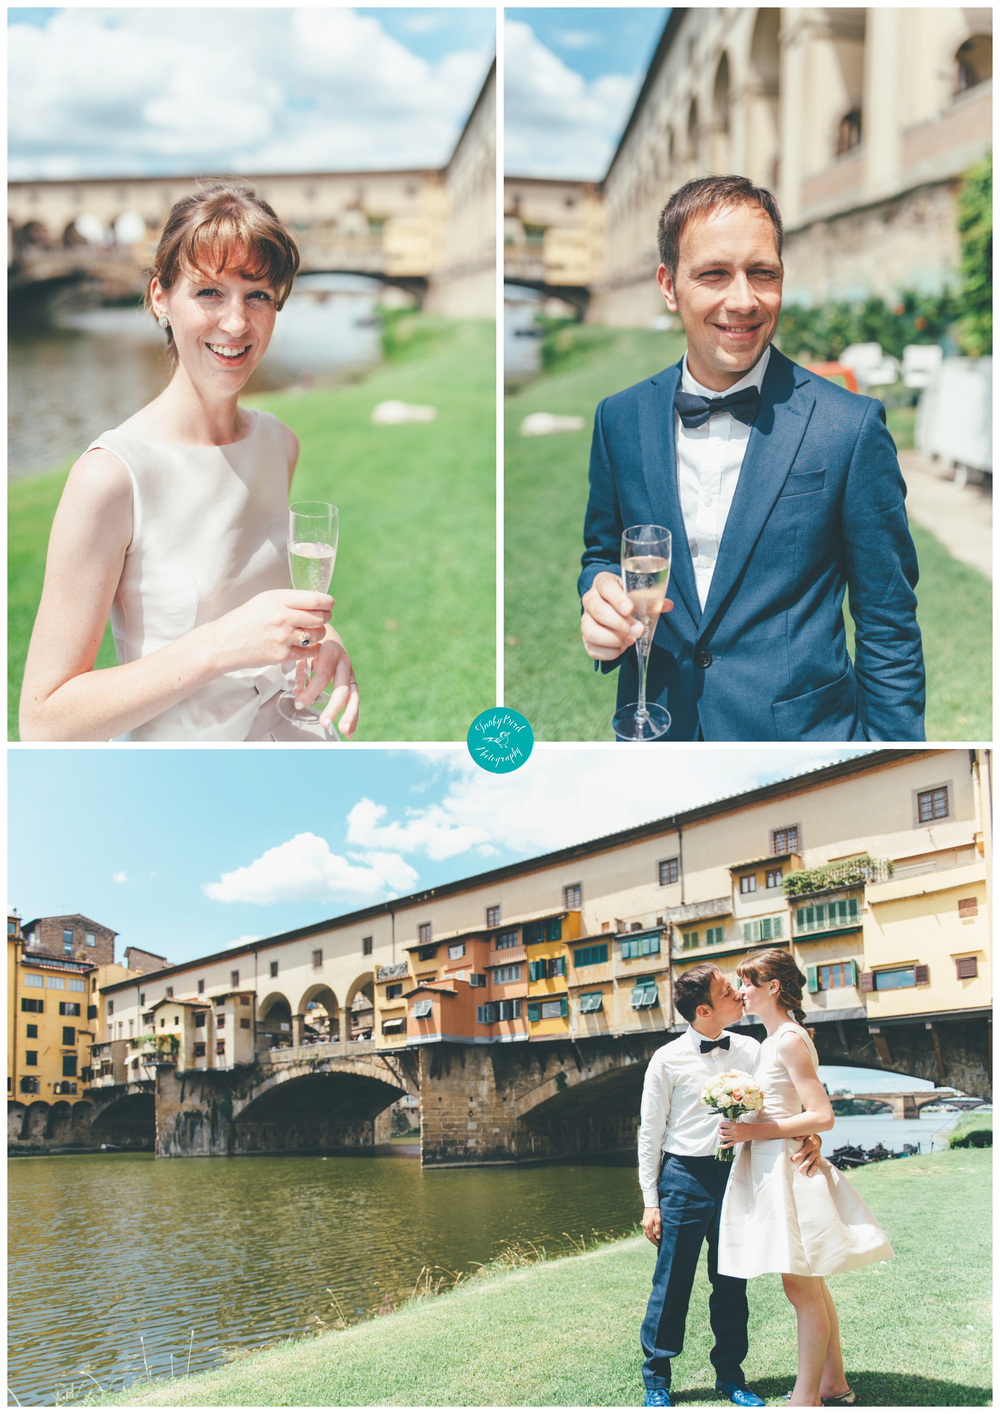 FunkyBird Photography Wedding Photographer in Tuscany   #destinationwedding #weddinginitaly #weddinginflorence #weddingphotographerintuscany #smallwedding #funkybirdweddingdesign #funkybirdphotography